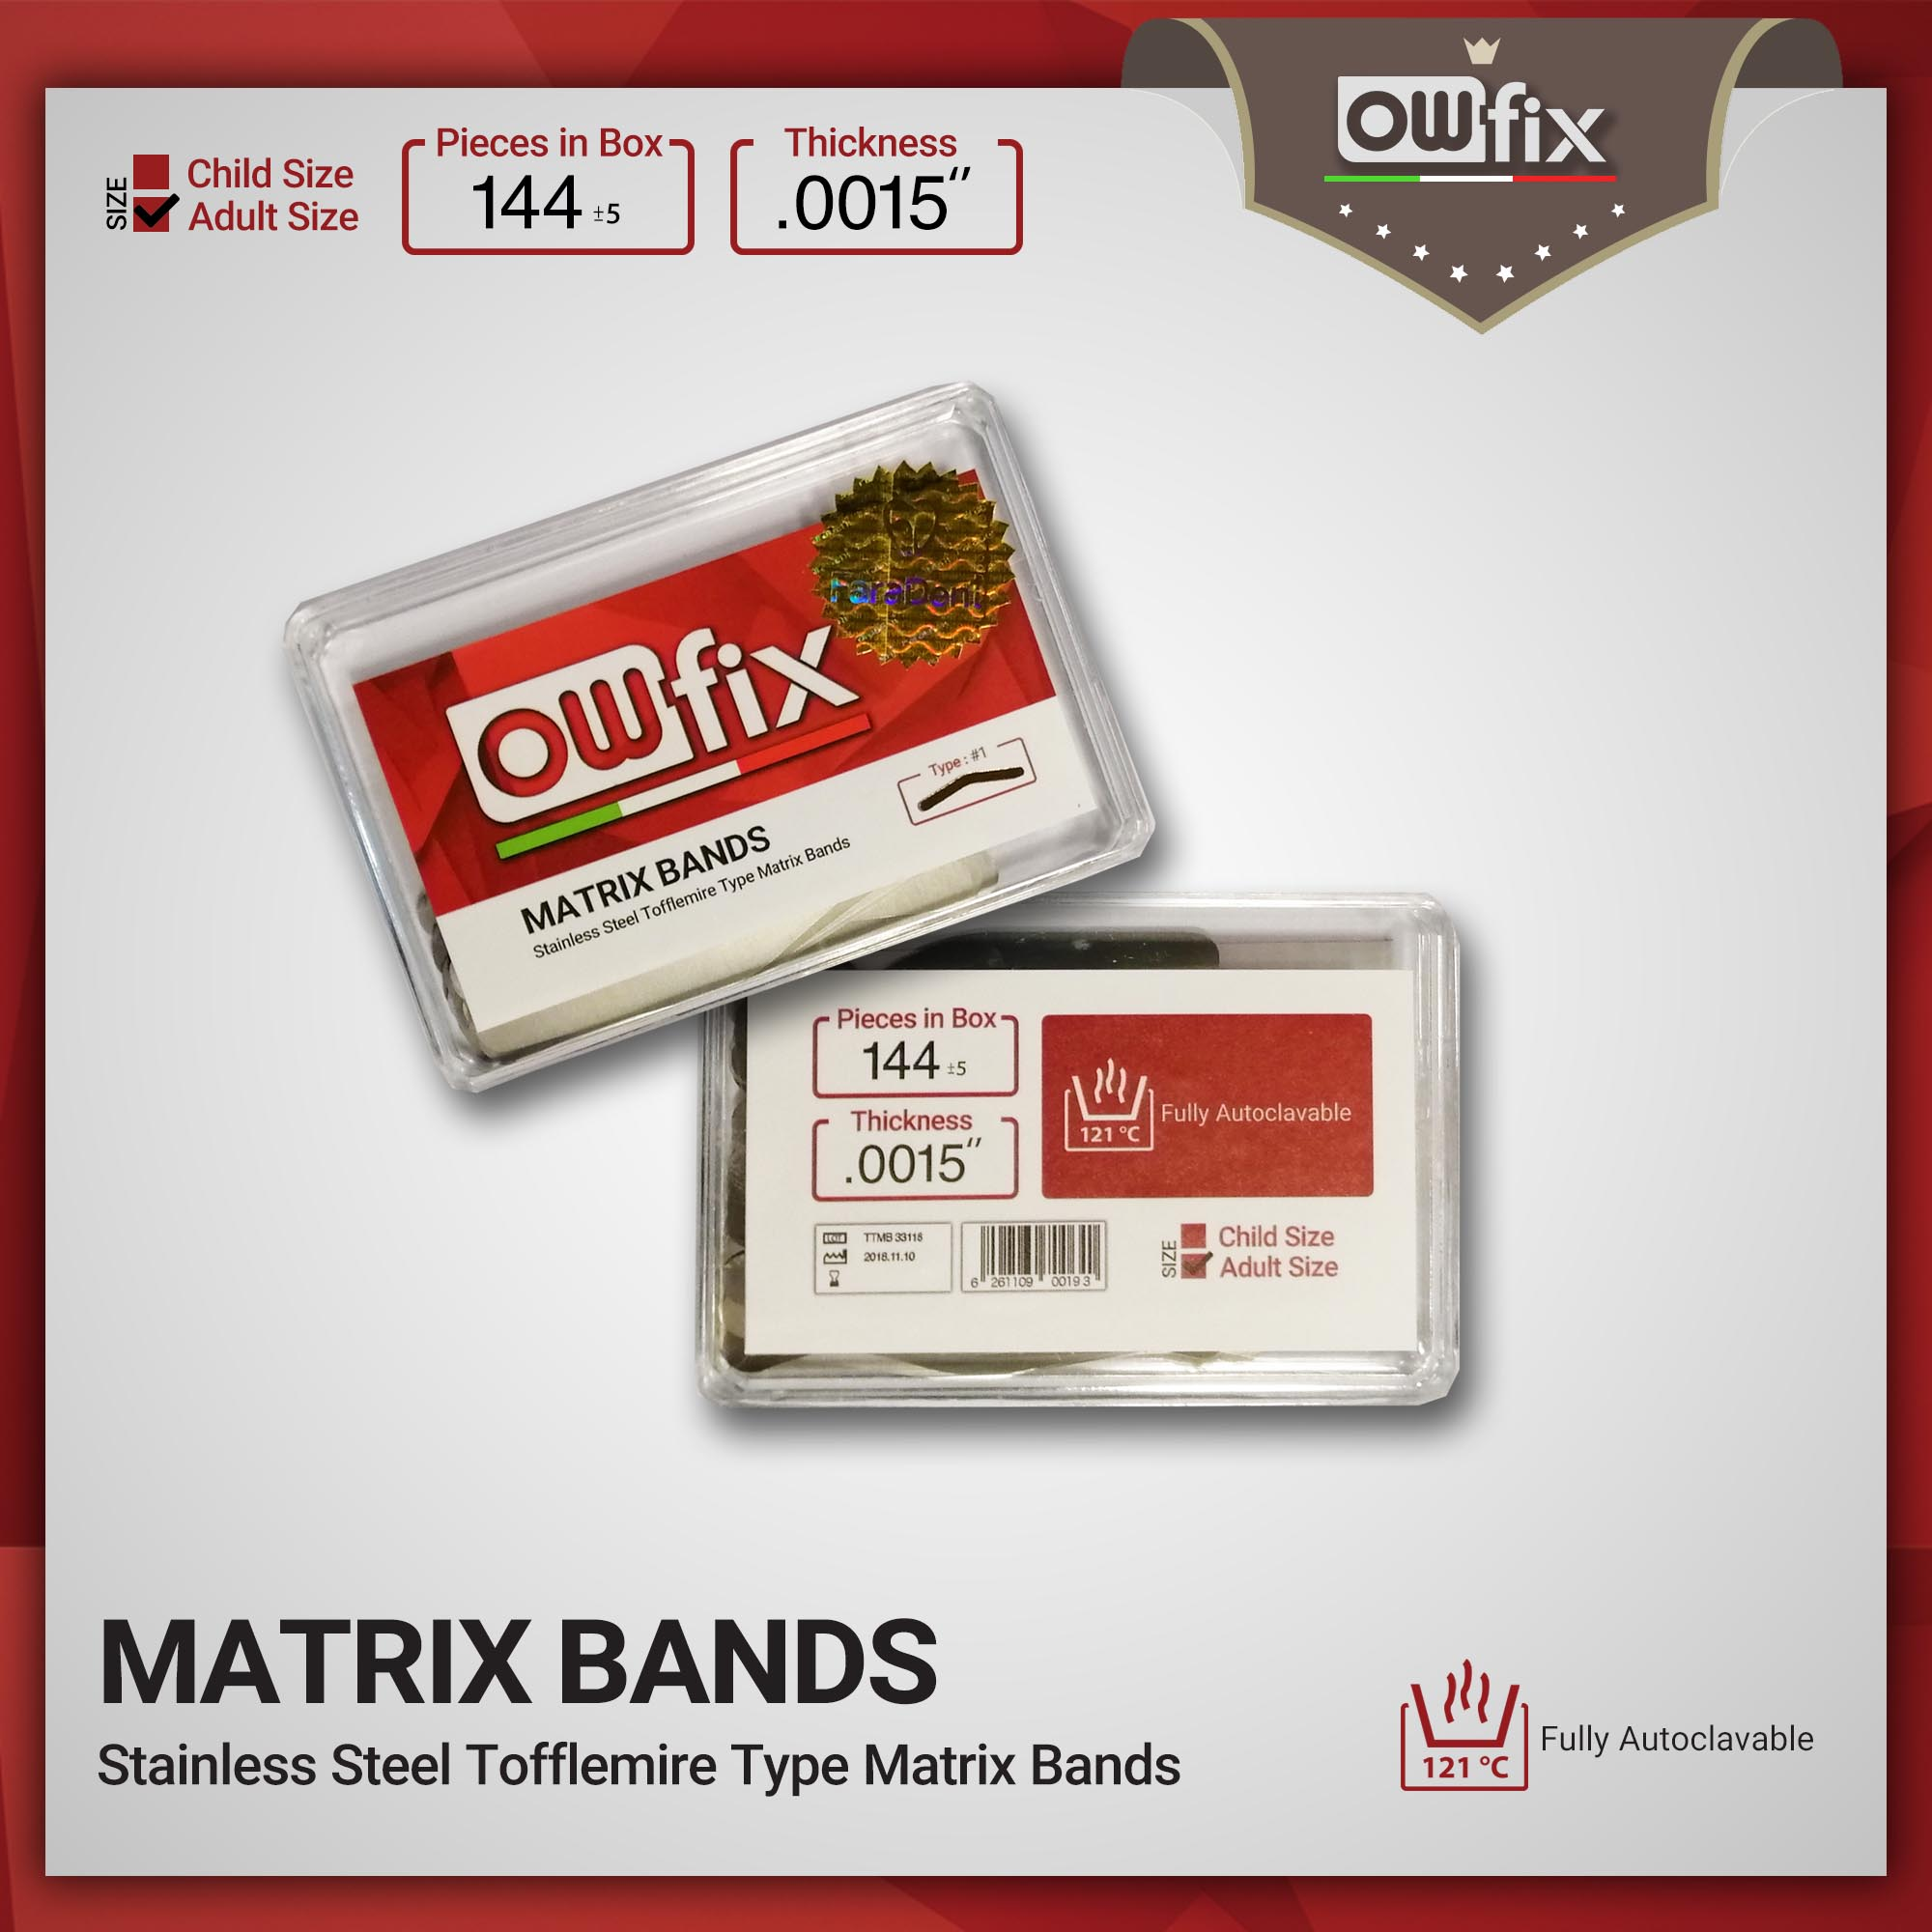 Stainless Steel Tofflemire Type Matrix Bands owfix